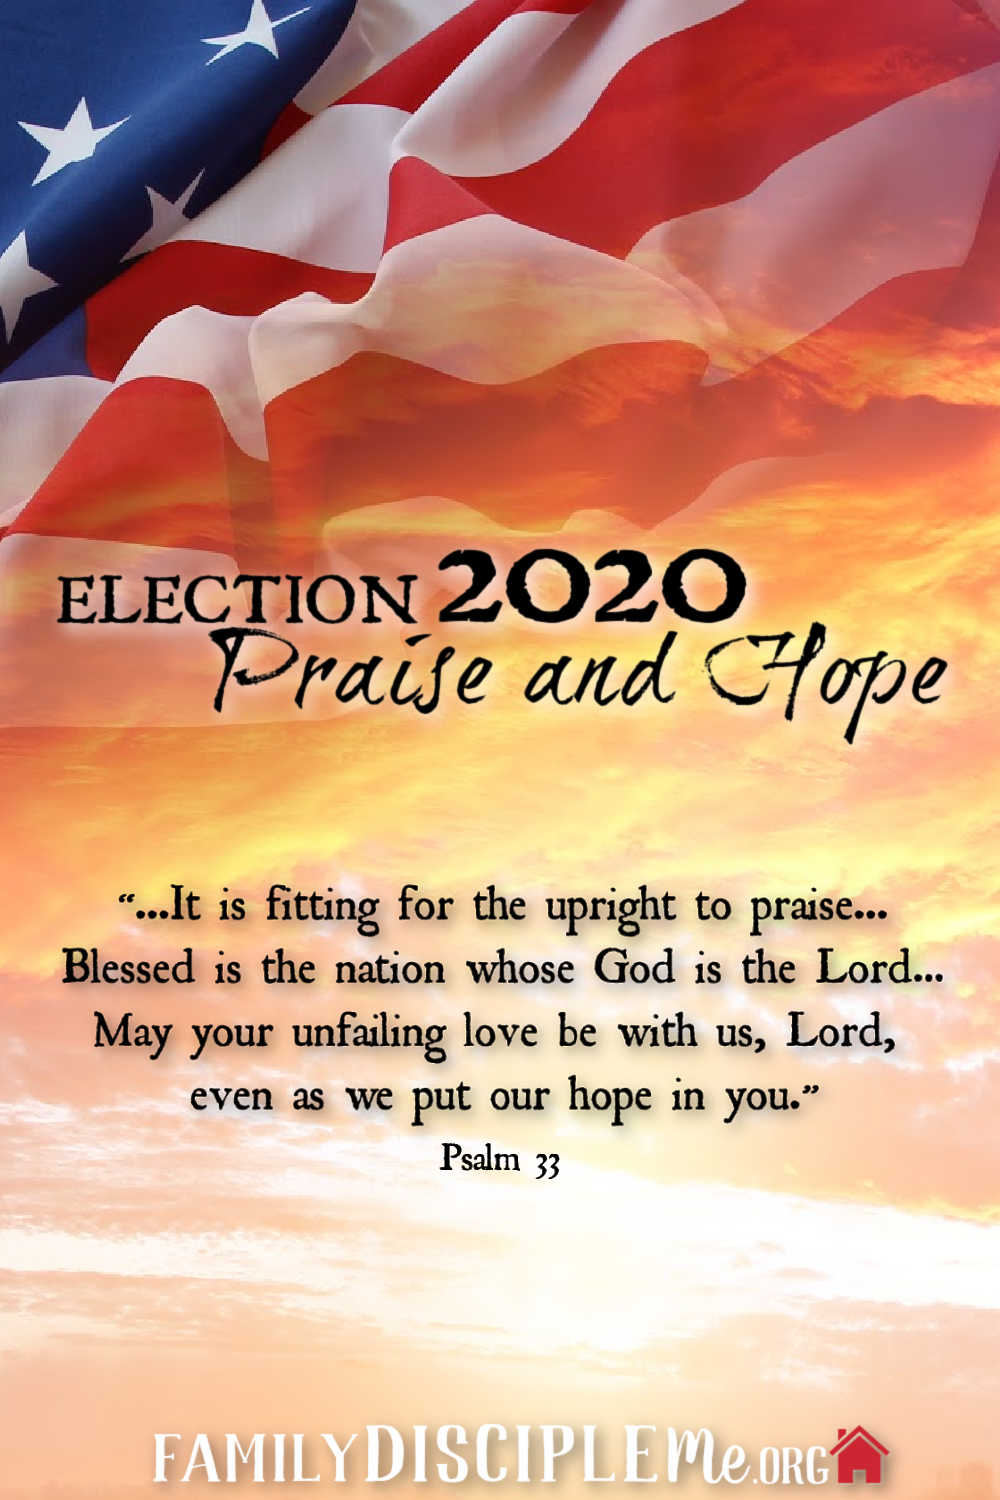 ELECTION 2020: PRAISE AND HOPE